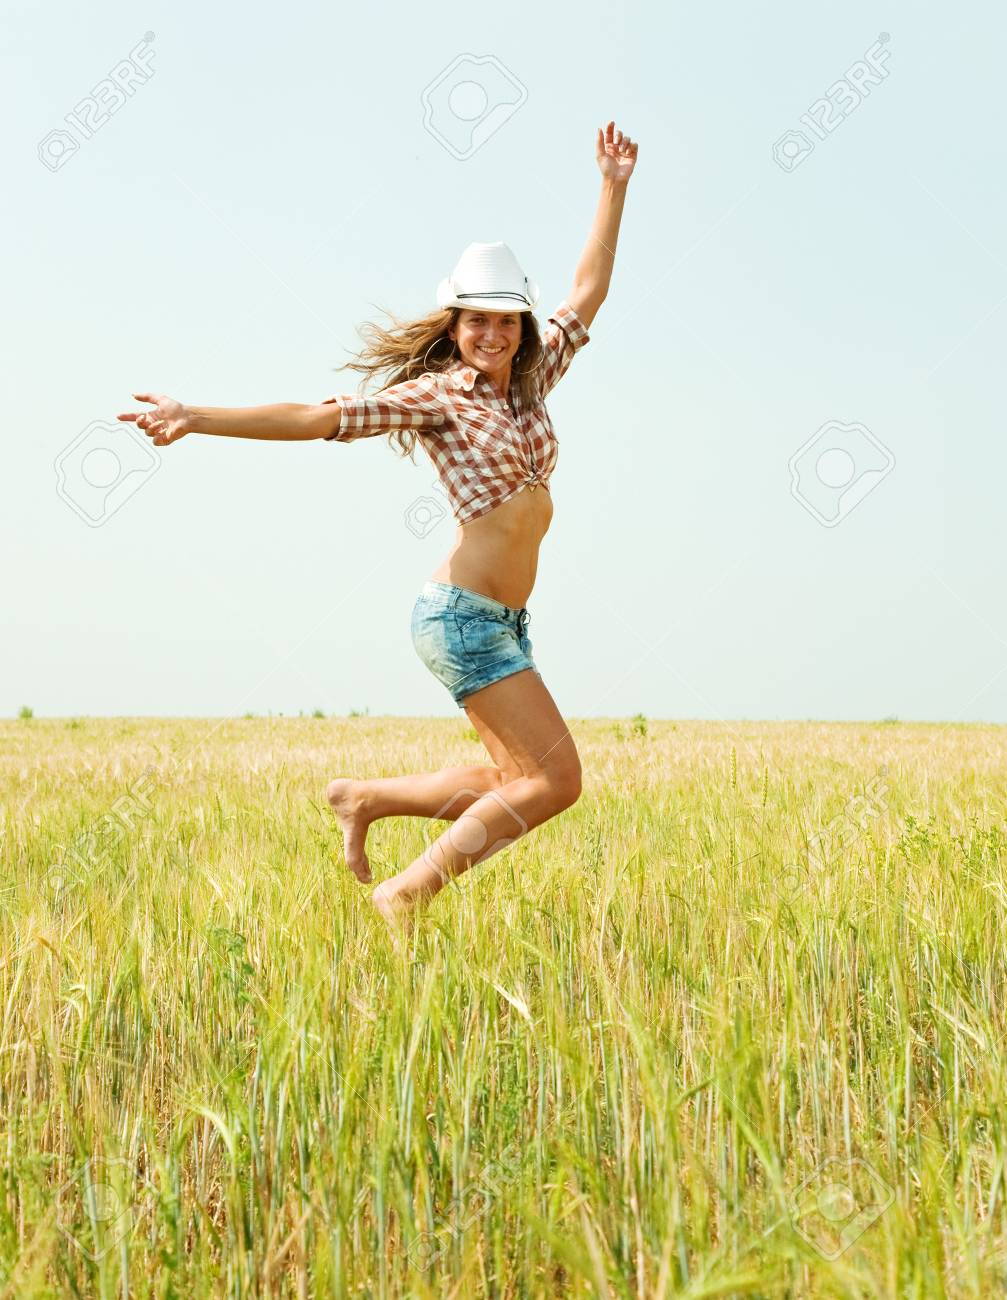 Jumping girl  at cereals field in summer Stock Photo - 7941615